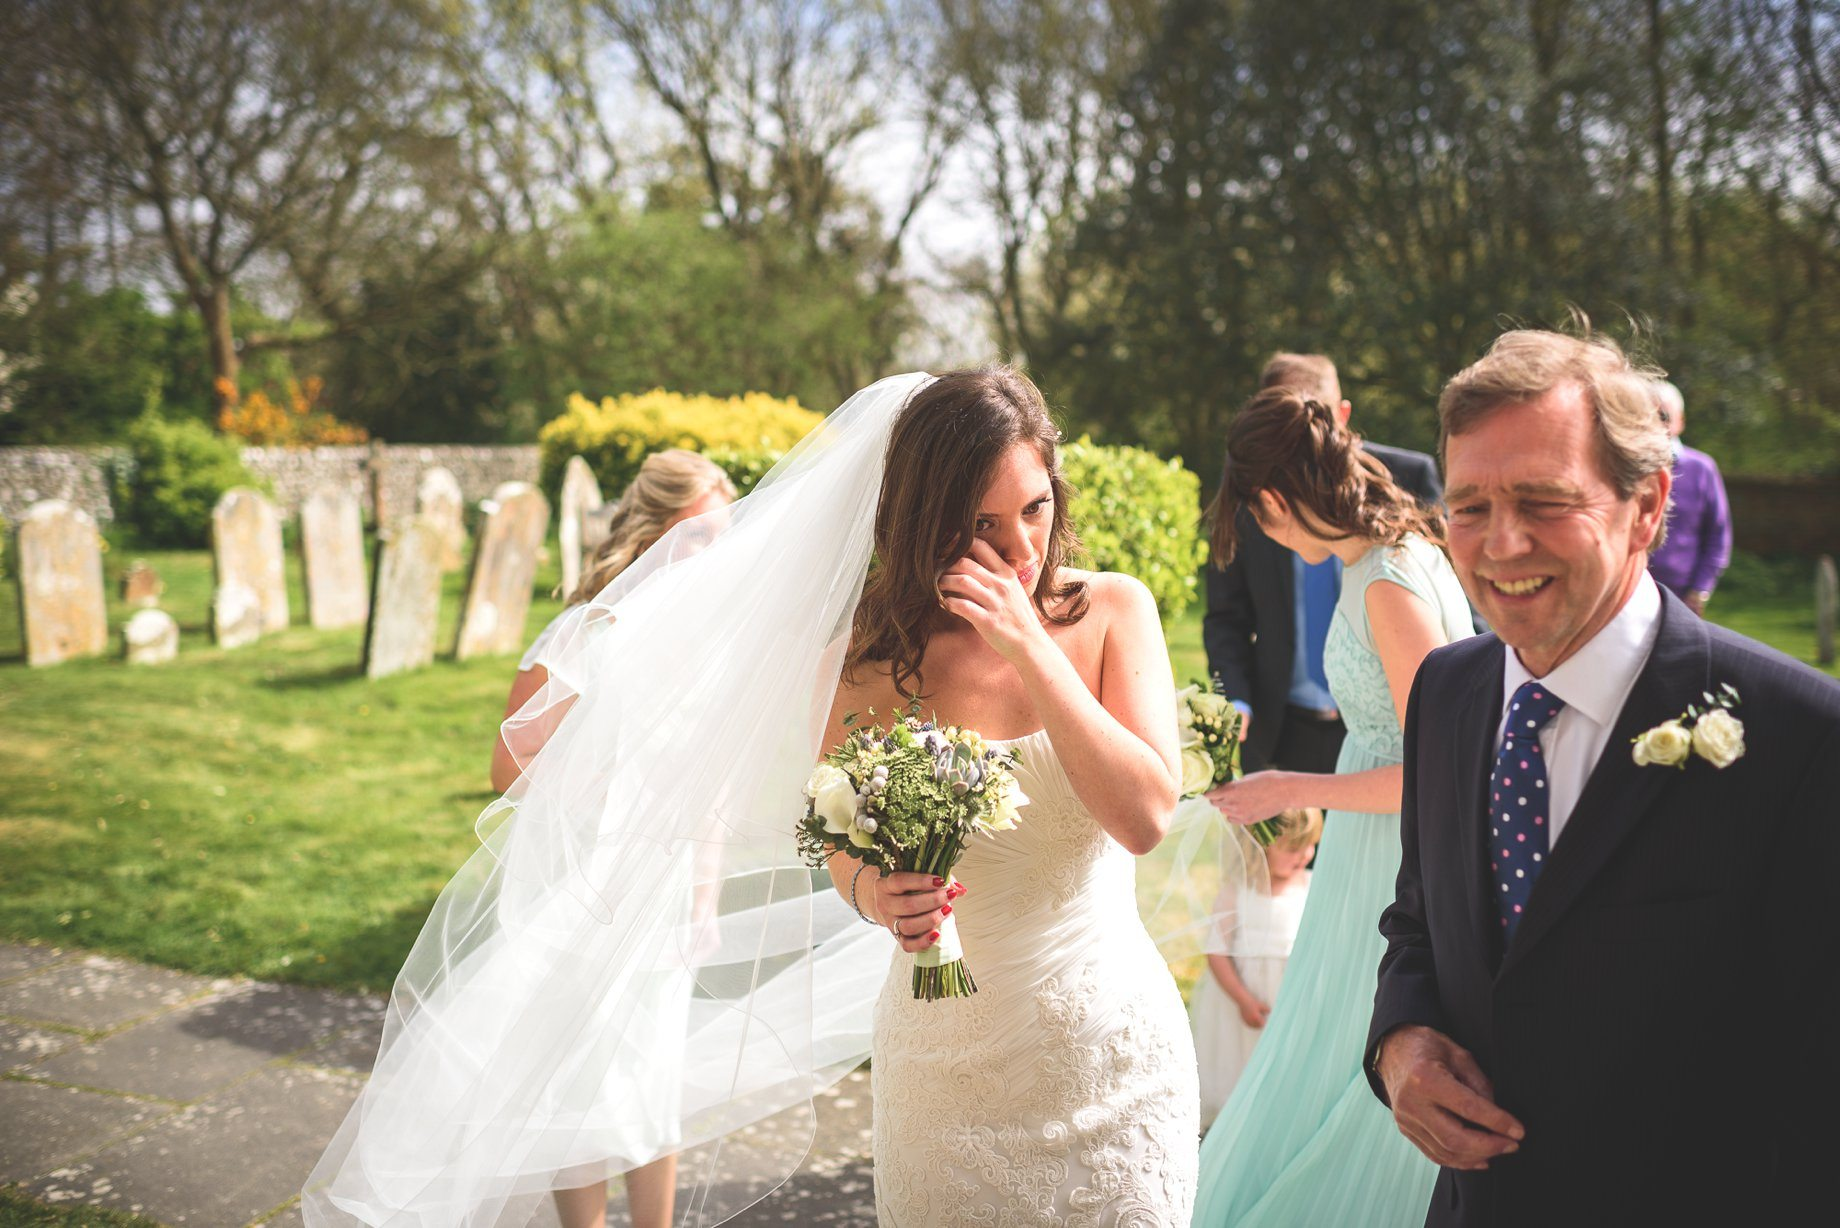 Louisa and Chris - West Sussex wedding photography (54 of 160)